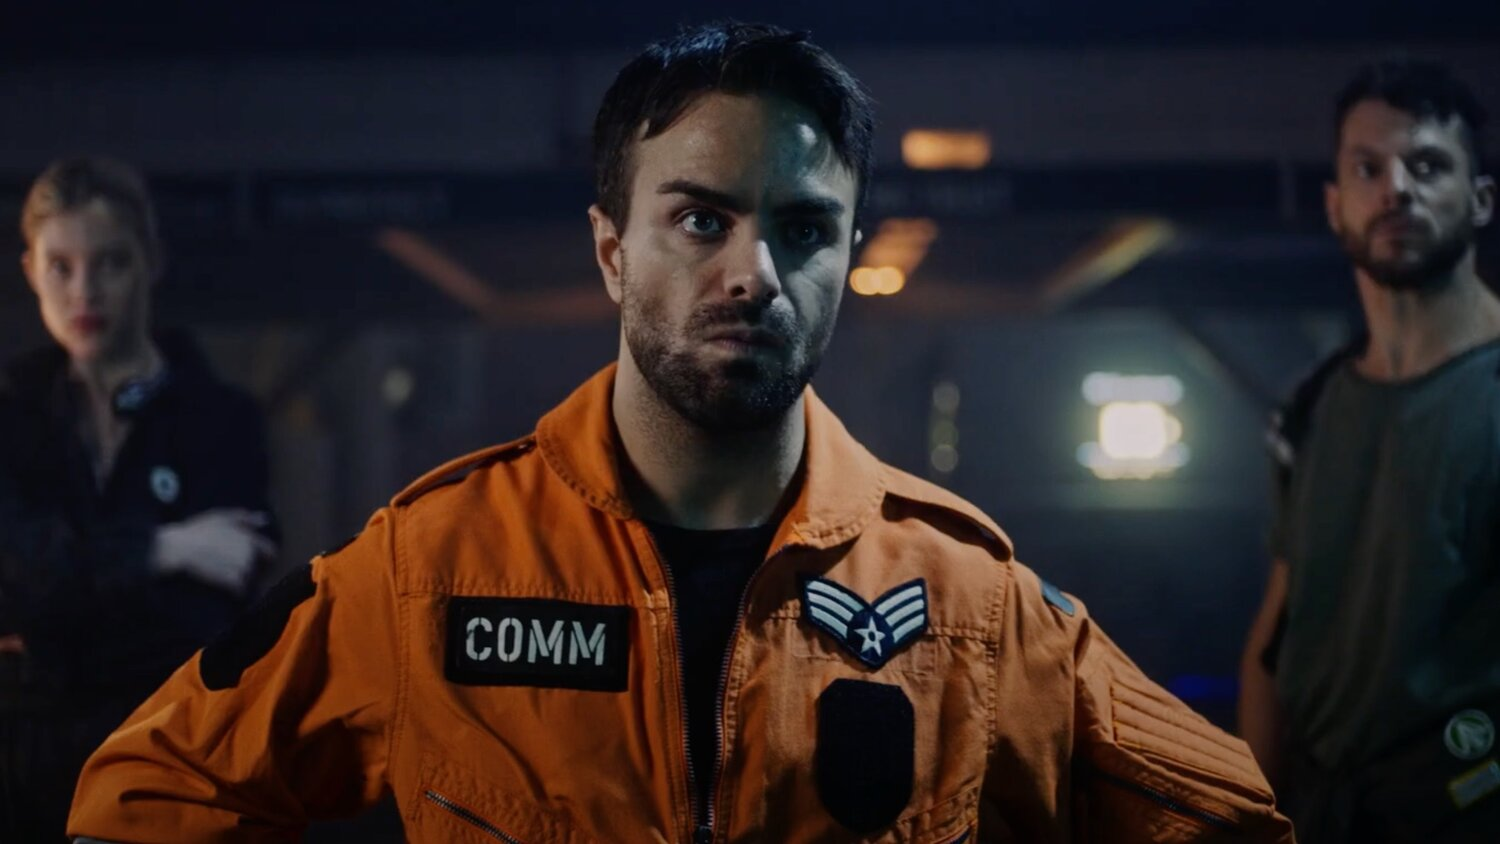 This Cool Fan Film For The Sci Fi Game Among Us Is Filled With Suspense Geektyrant